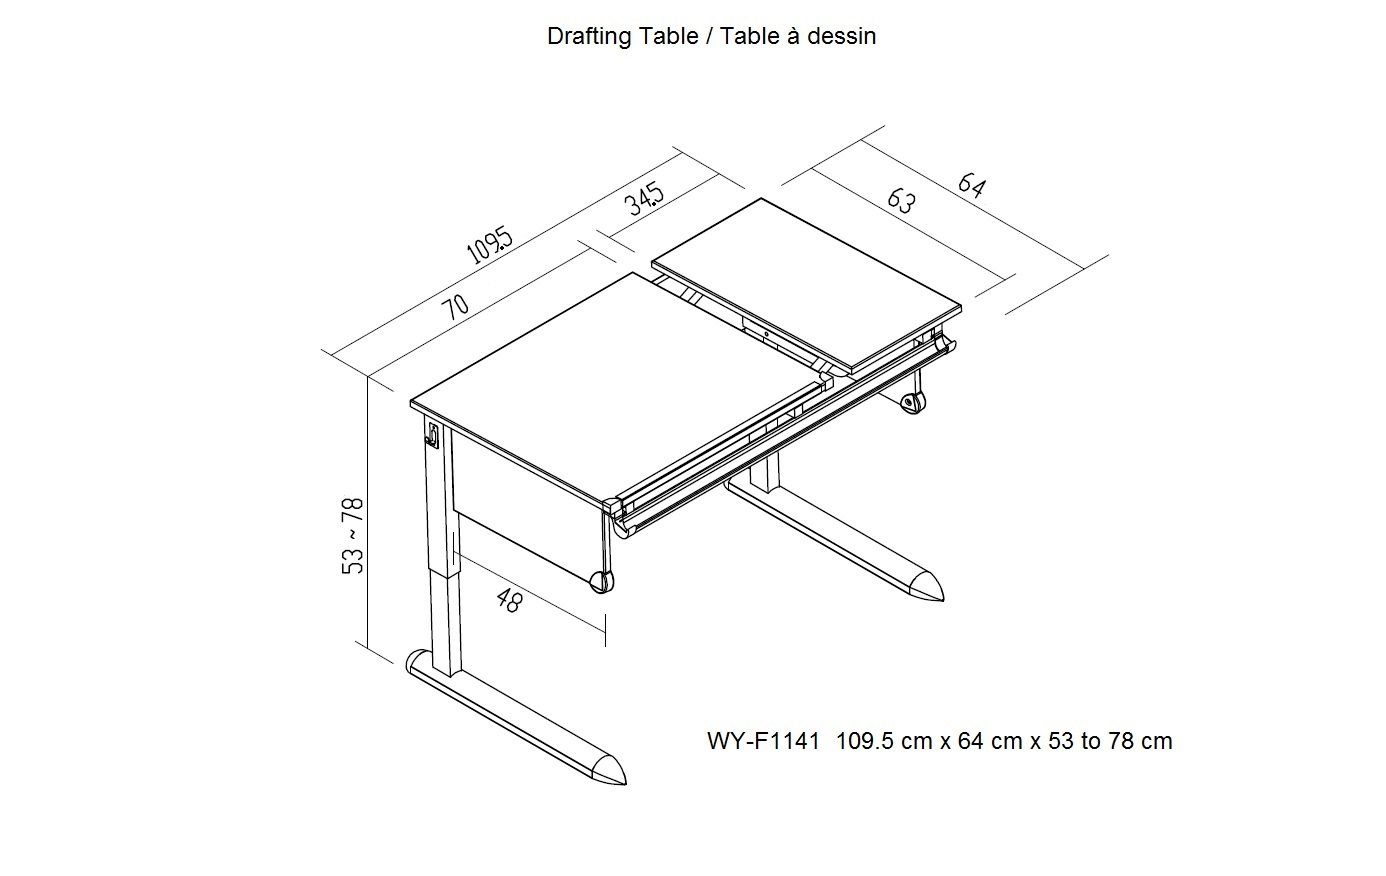 Wymo Kids Drafting Table Height Adjustable Childrens Desk: Amazon.ca: Home  U0026 Kitchen